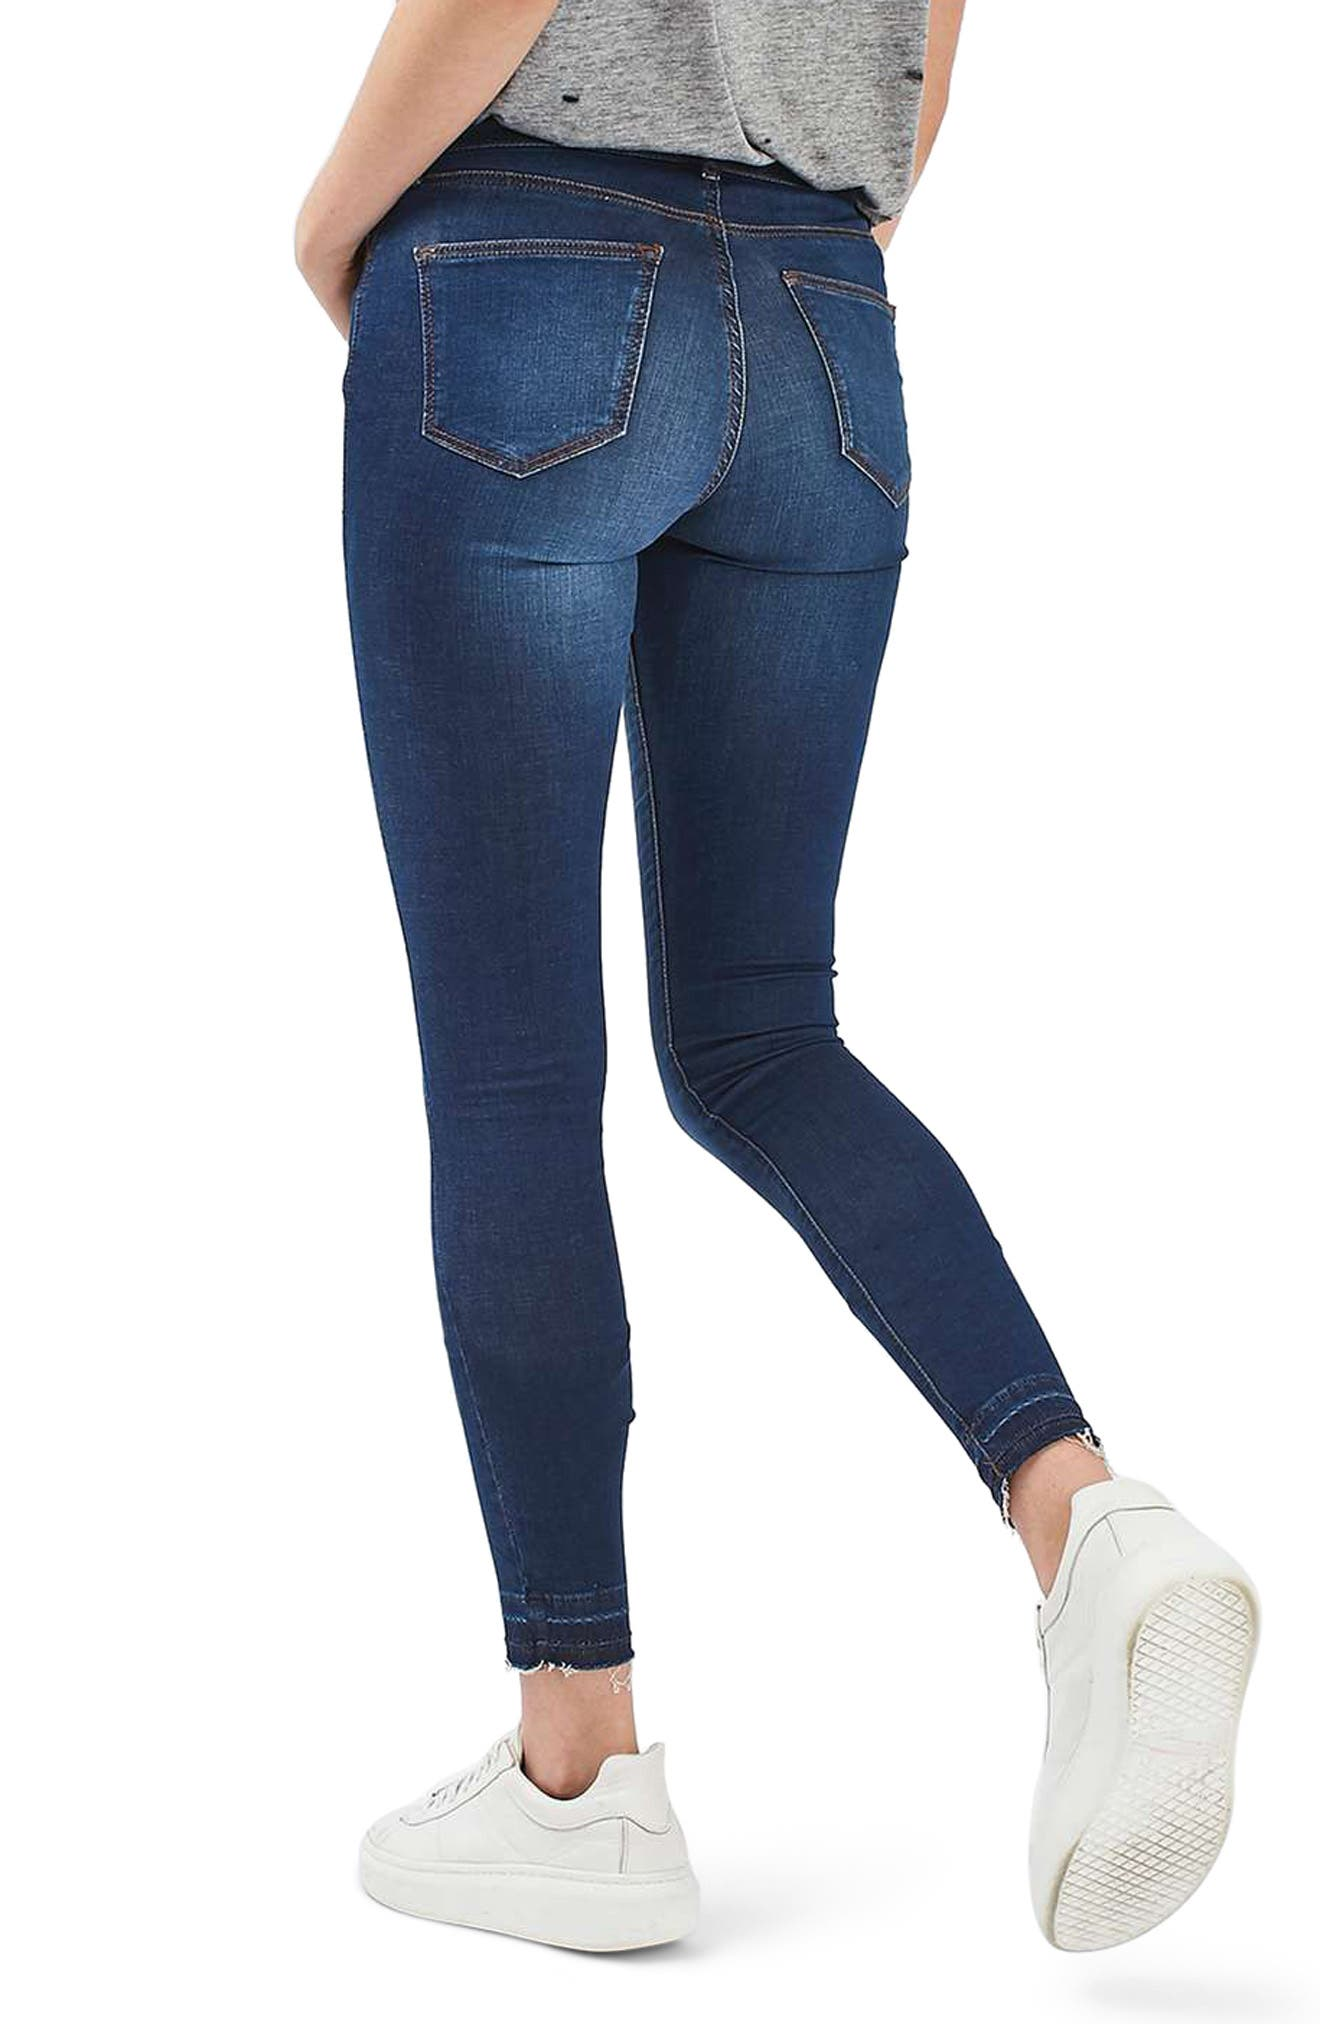 Leigh Release Hem Skinny Jeans,                             Alternate thumbnail 2, color,                             Indigo